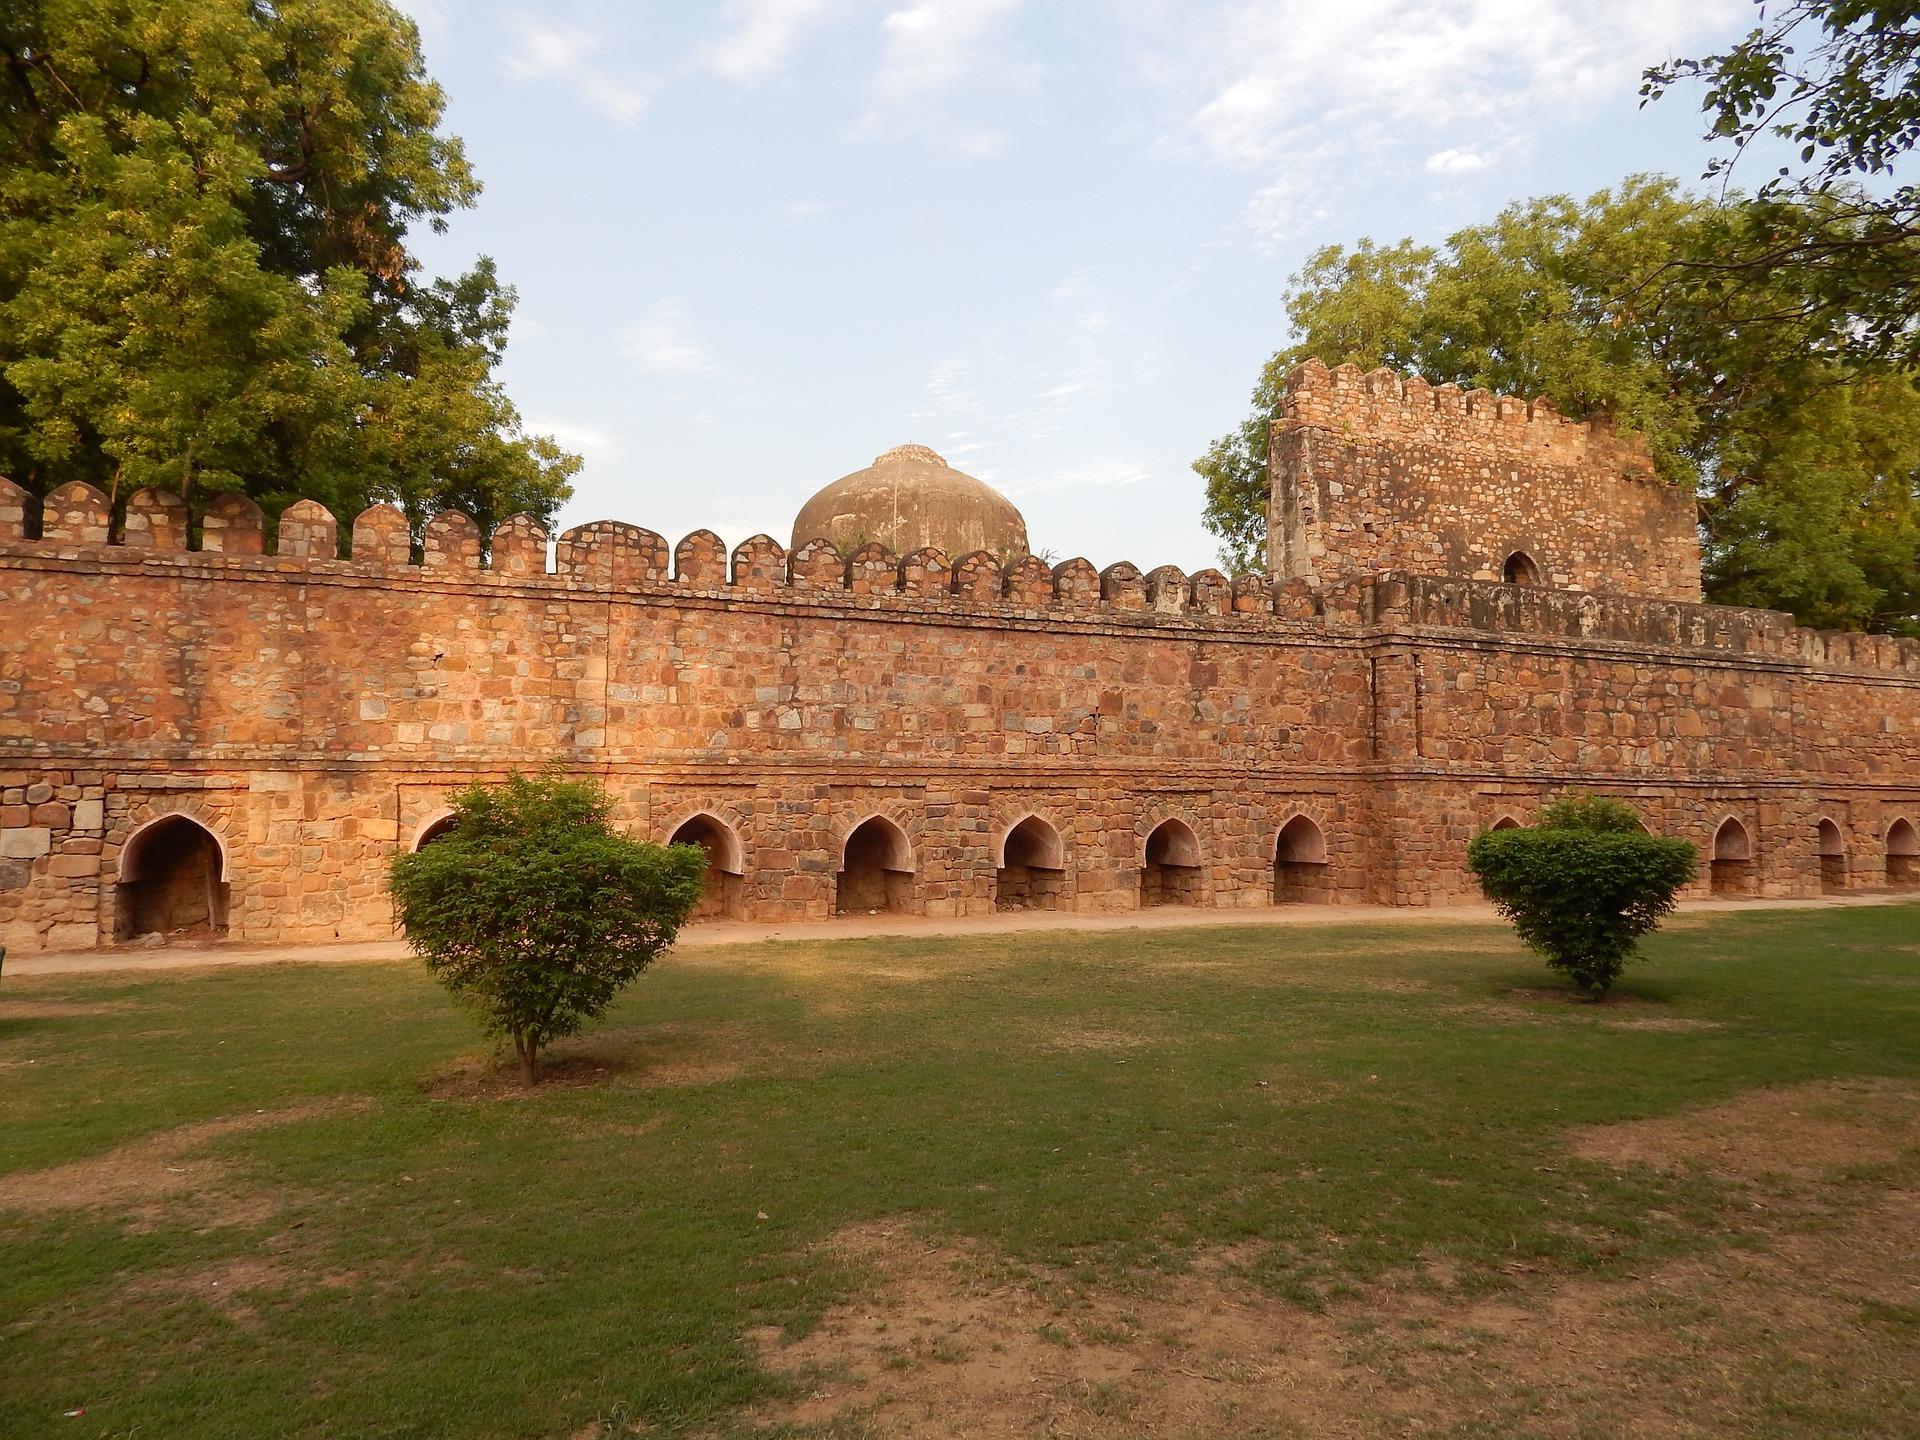 Lodi Gardens, New Delhi, India